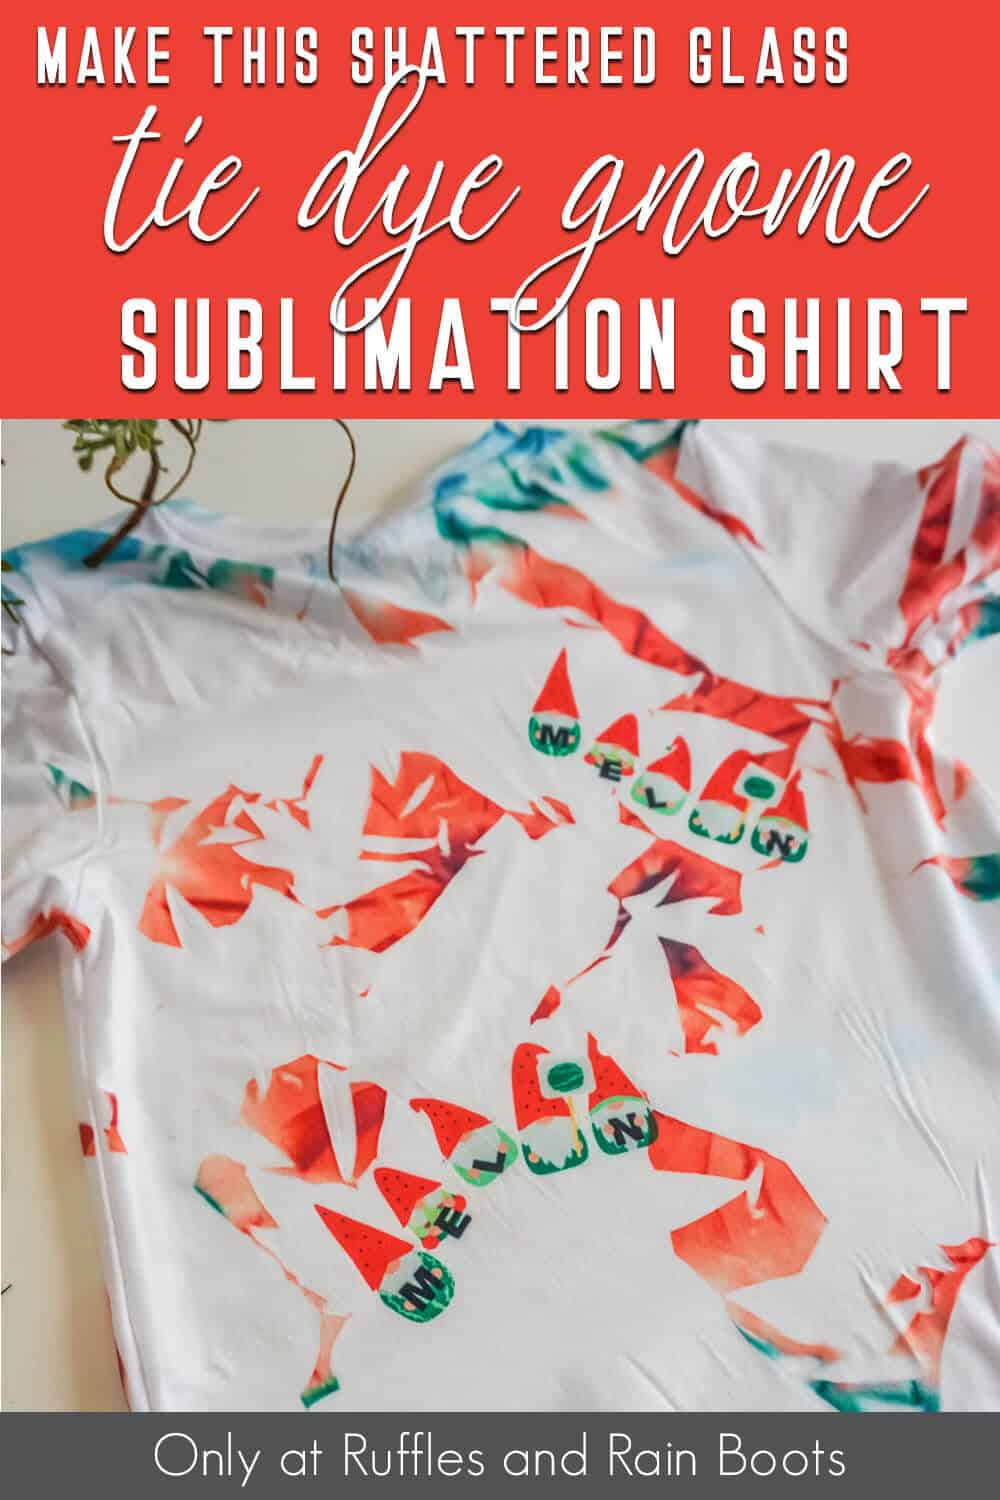 tik tok shattered glass sublimation shirt with gnomes with text which reads make this shattered glass tie dye gnome sublimation shirt